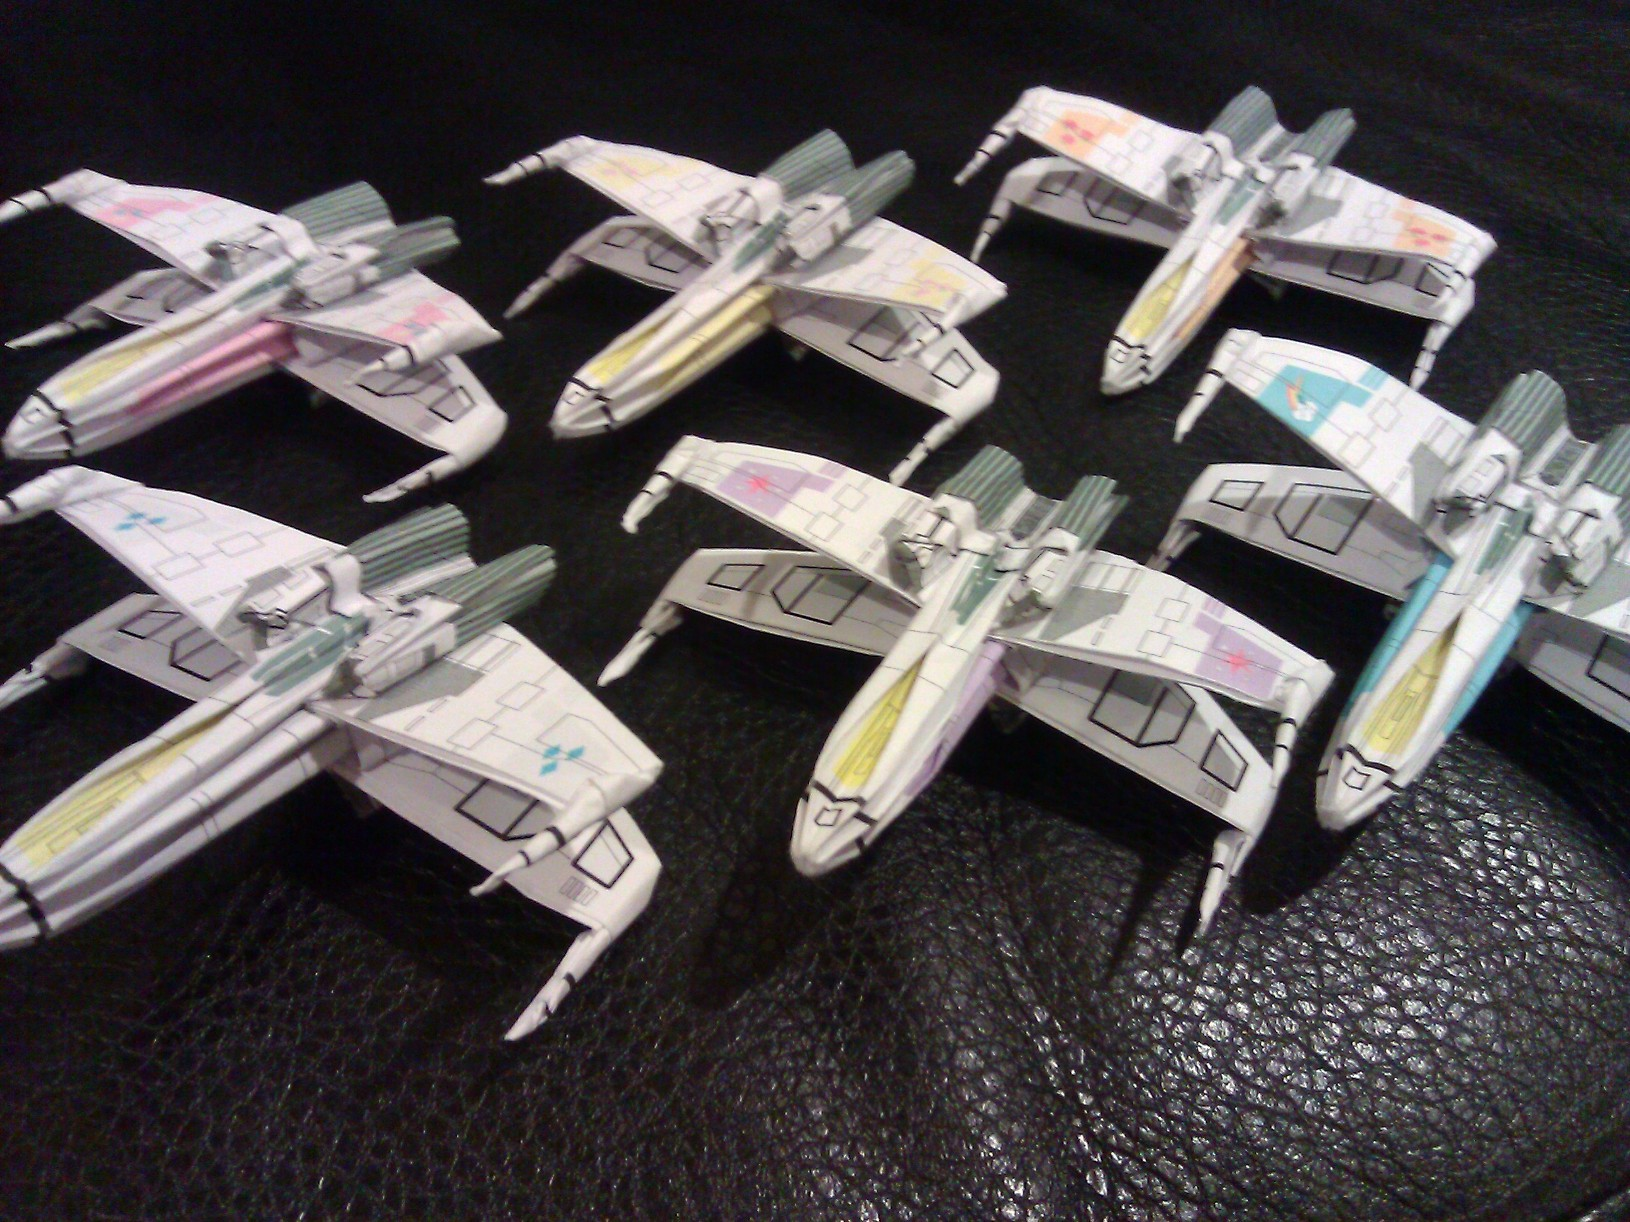 Mlp x wing squadron by taerkitty on deviantart mlp x wing squadron by taerkitty jeuxipadfo Images